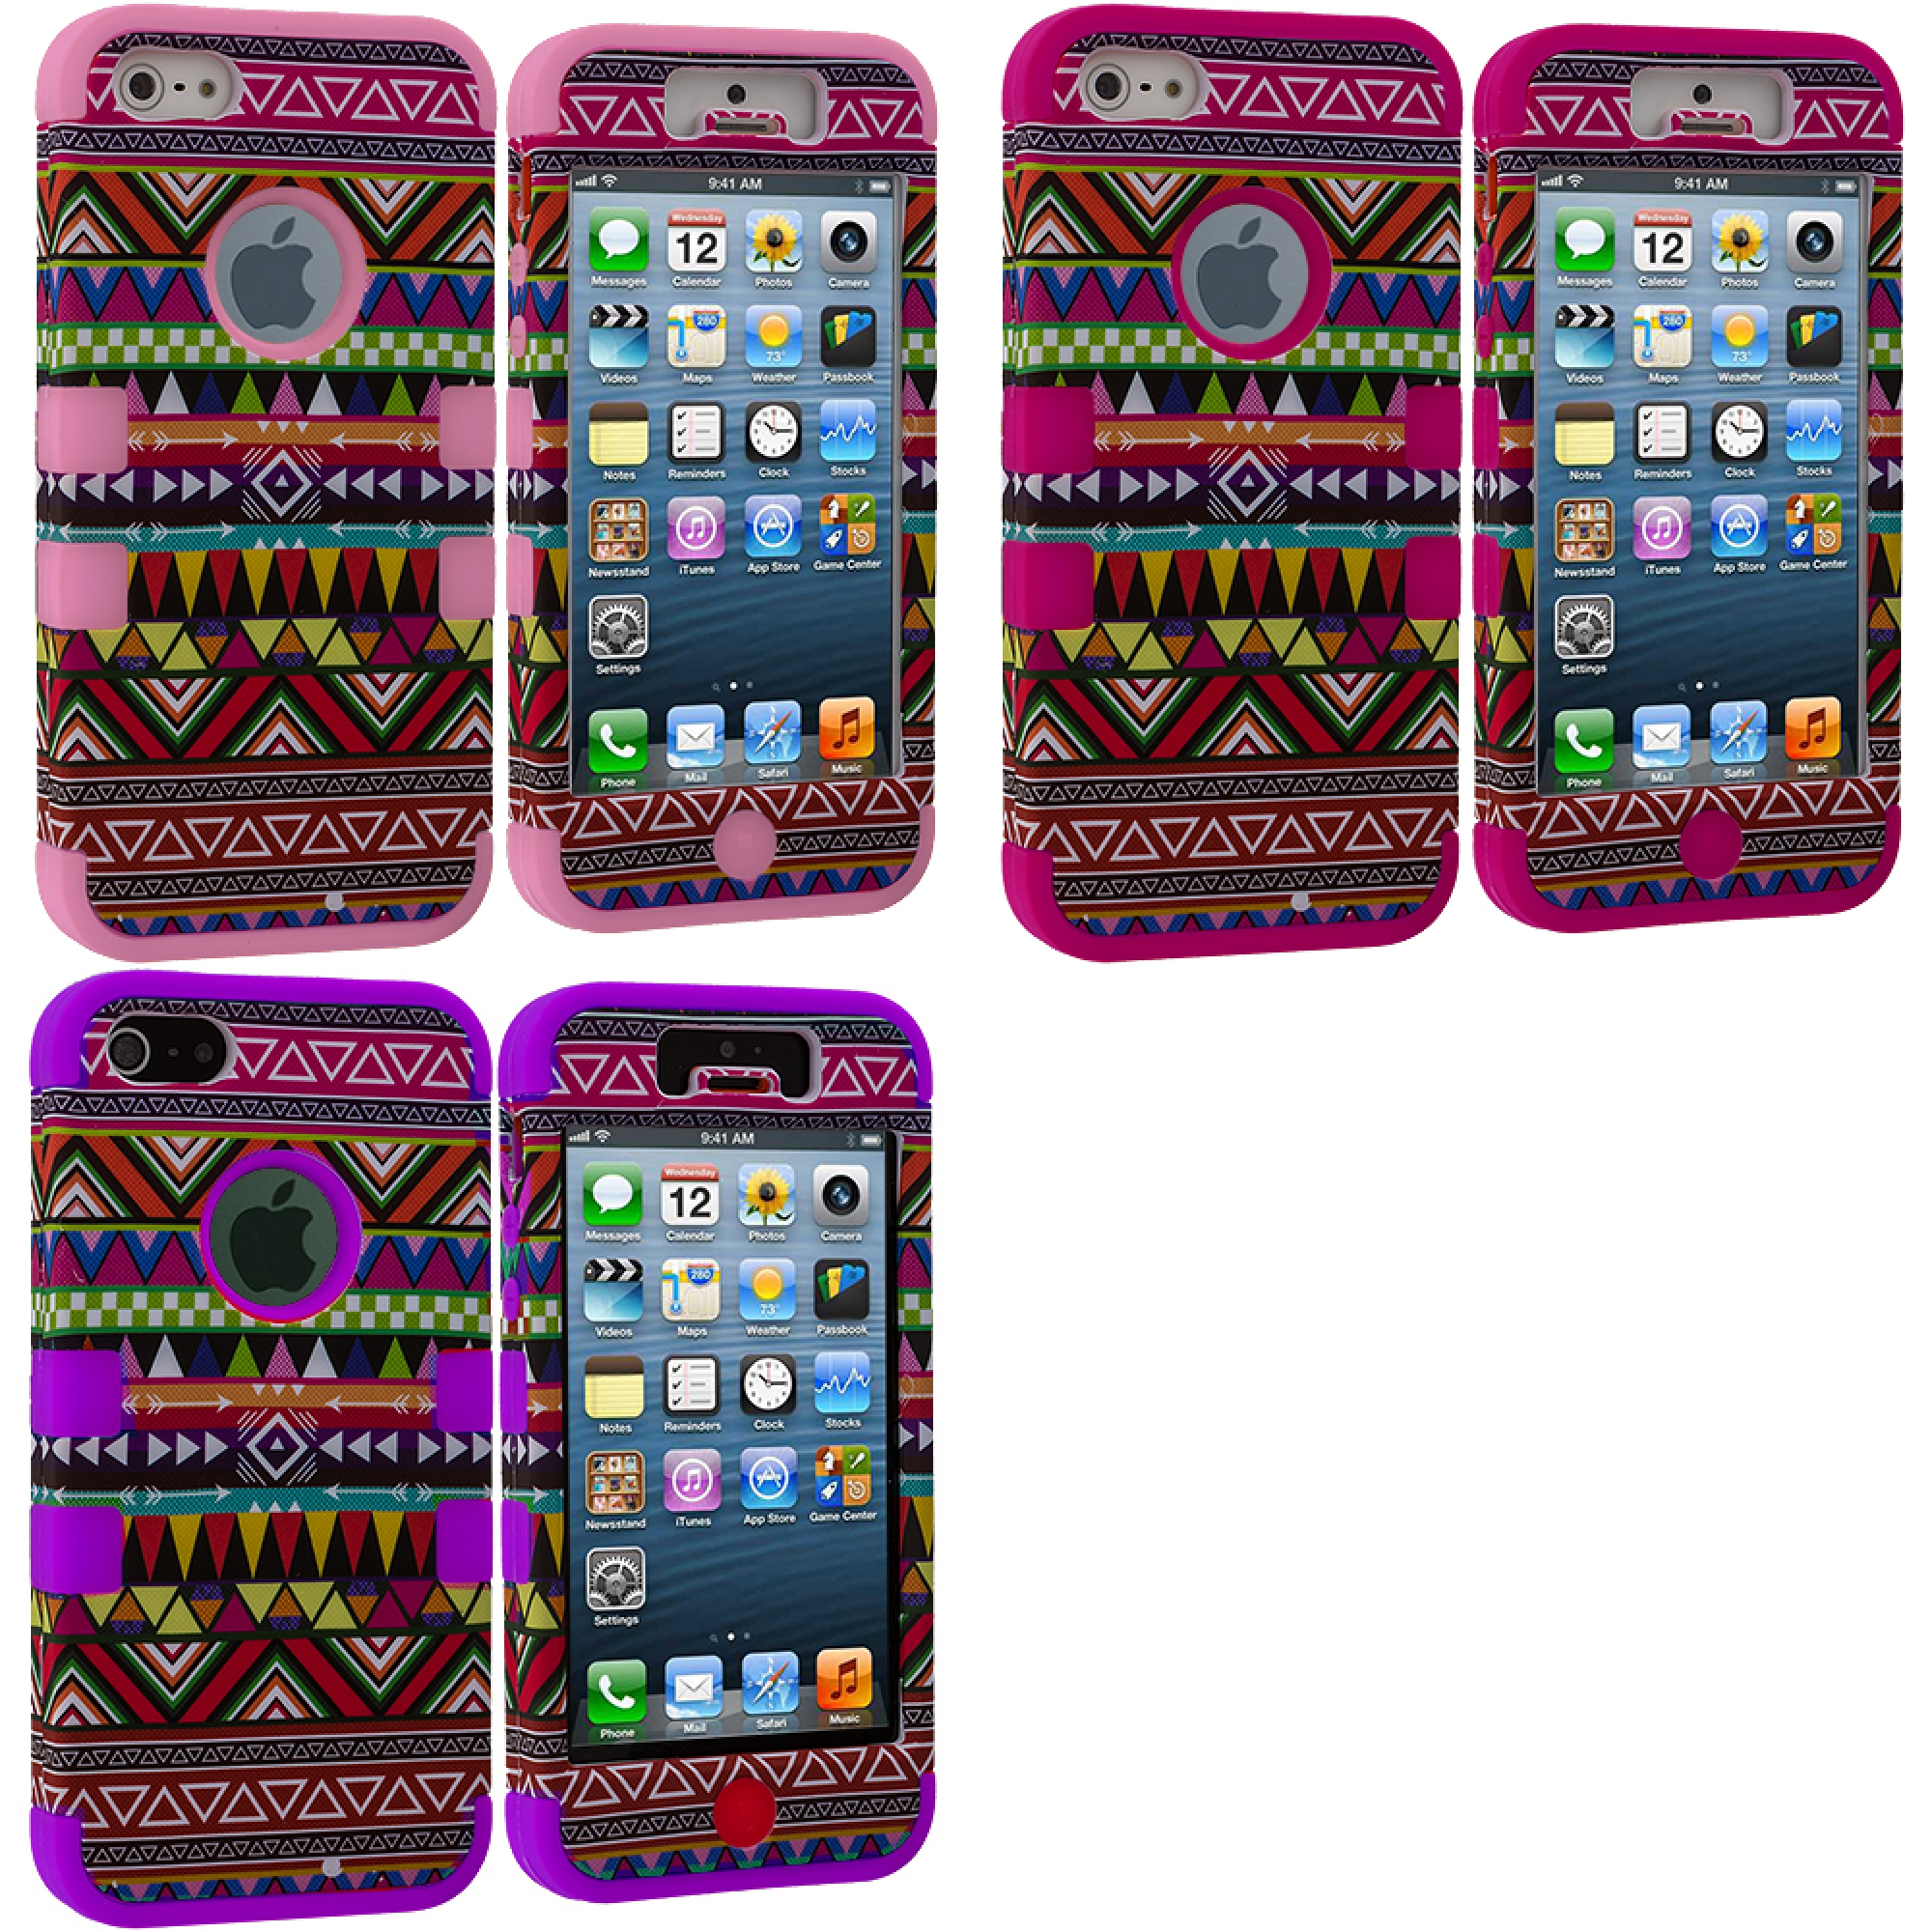 Apple iPhone 5/5S/SE Combo Pack : Pink Tribal Hybrid Tuff Hard/Soft 3-Piece Case Cover